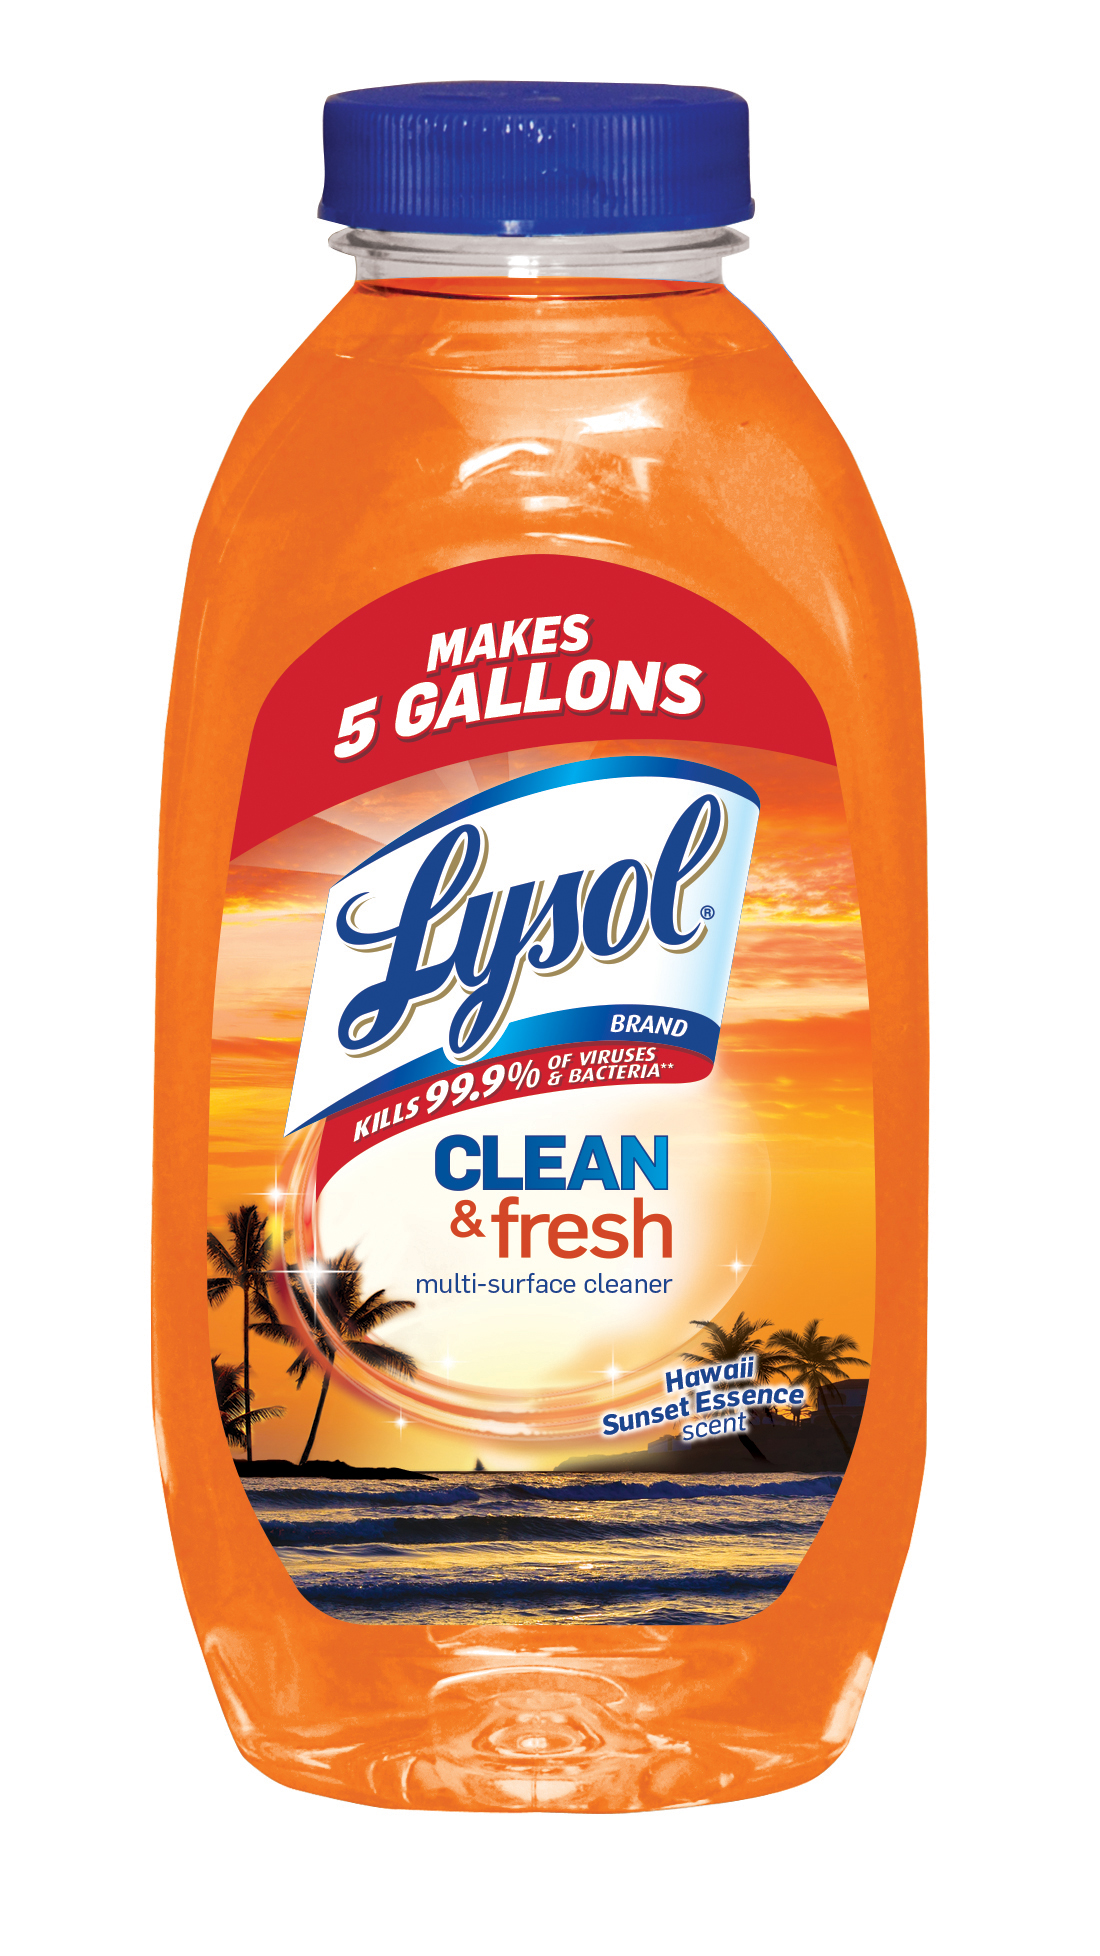 Lysol Clean & Fresh Multi-Surface Cleaner, Hawaii Sunset, 10.75oz